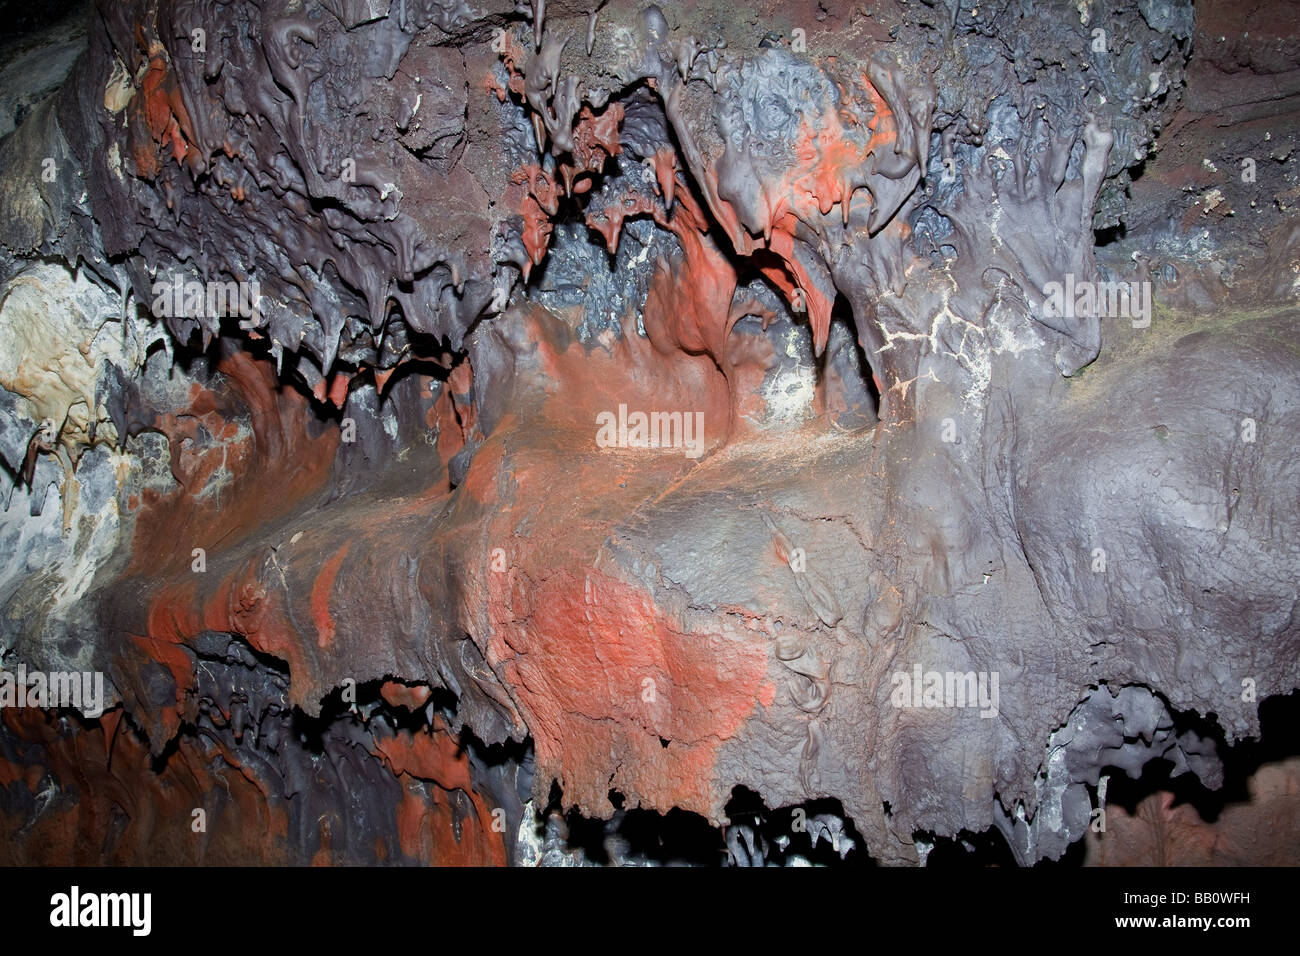 Cooled lava with iron oxide deposit inside lava tube. Big Island Hawaii - Stock Image